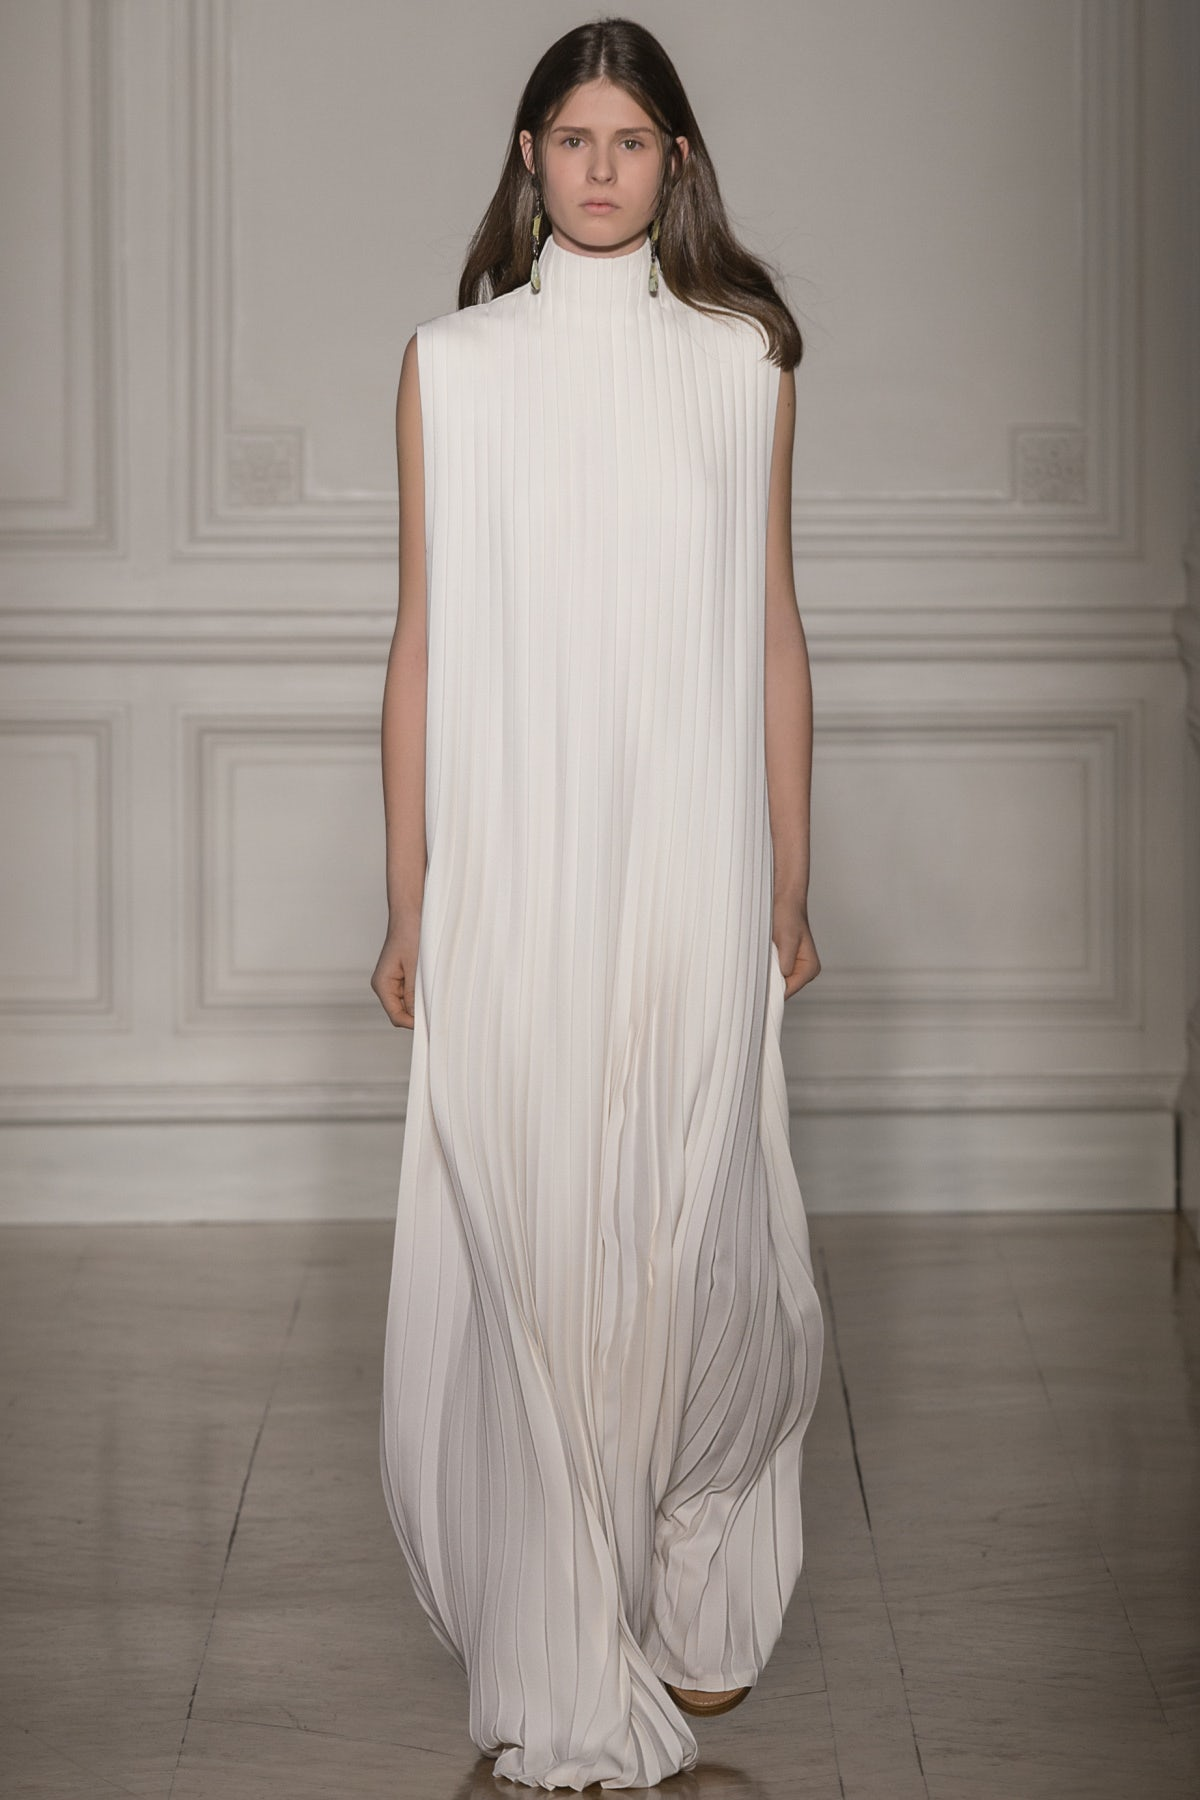 Valentino Haute Couture Spring/Summer 2017 | Source: InDigital.tv